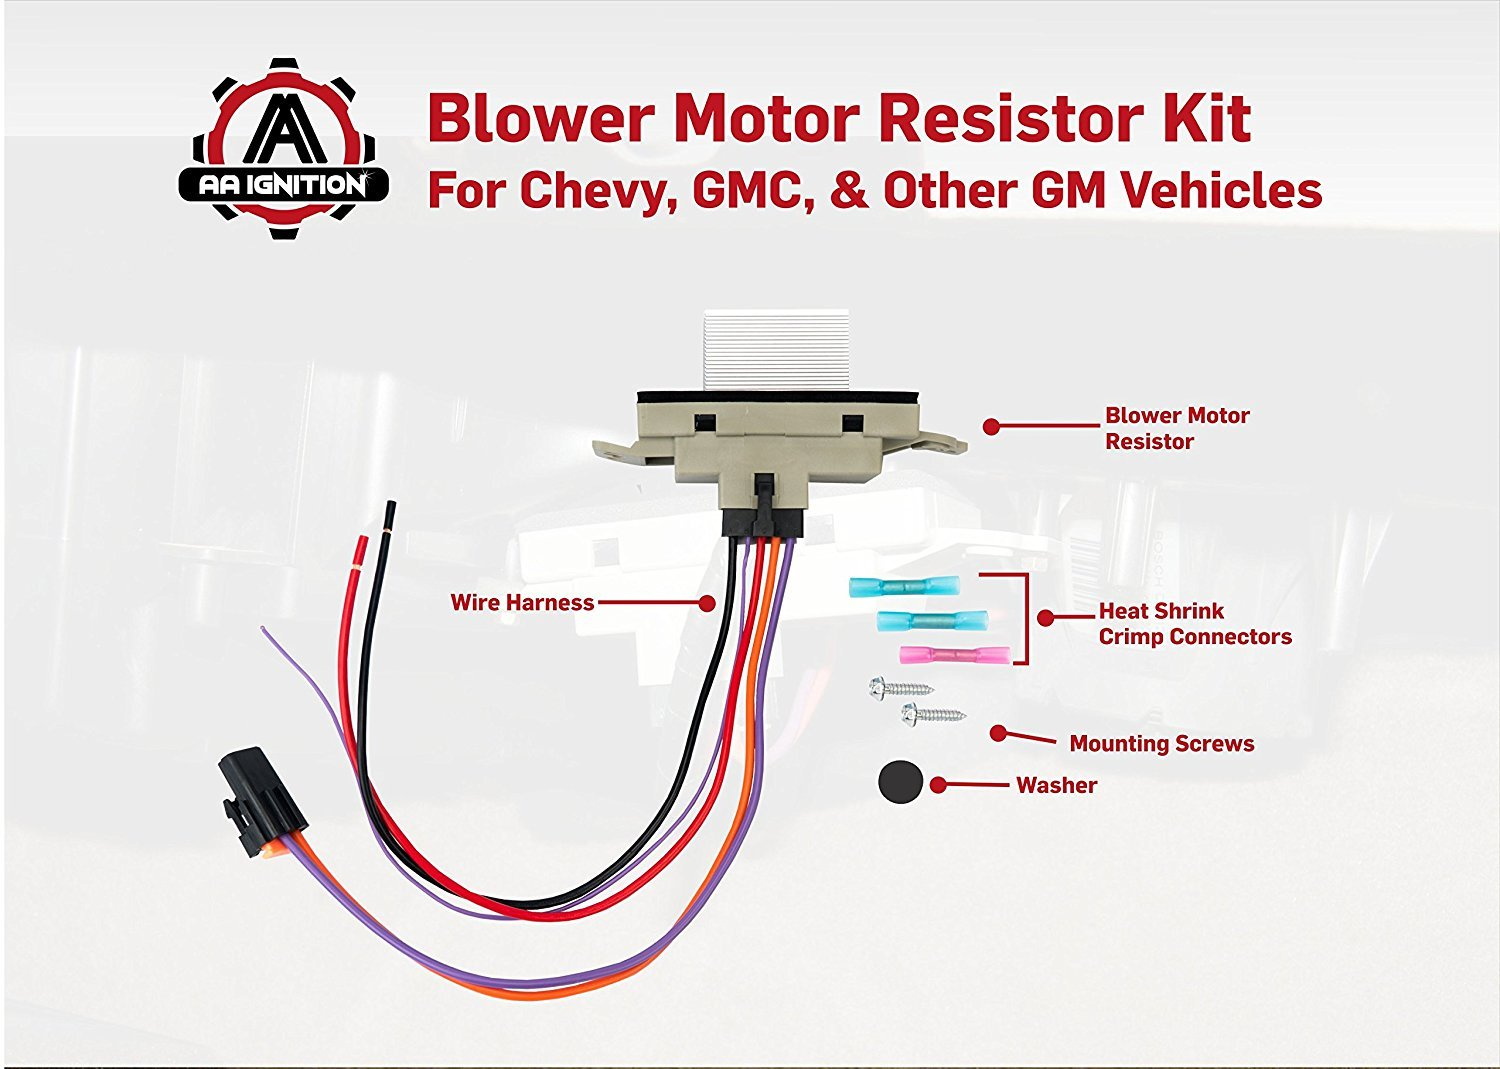 Amazon.com: Blower Motor Resistor Complete Kit With Harness - Replaces# 15  81773, 89018778, 89019351, 1581773, 15-81773 - Fits Chevy Silverado, Tahoe,  ...